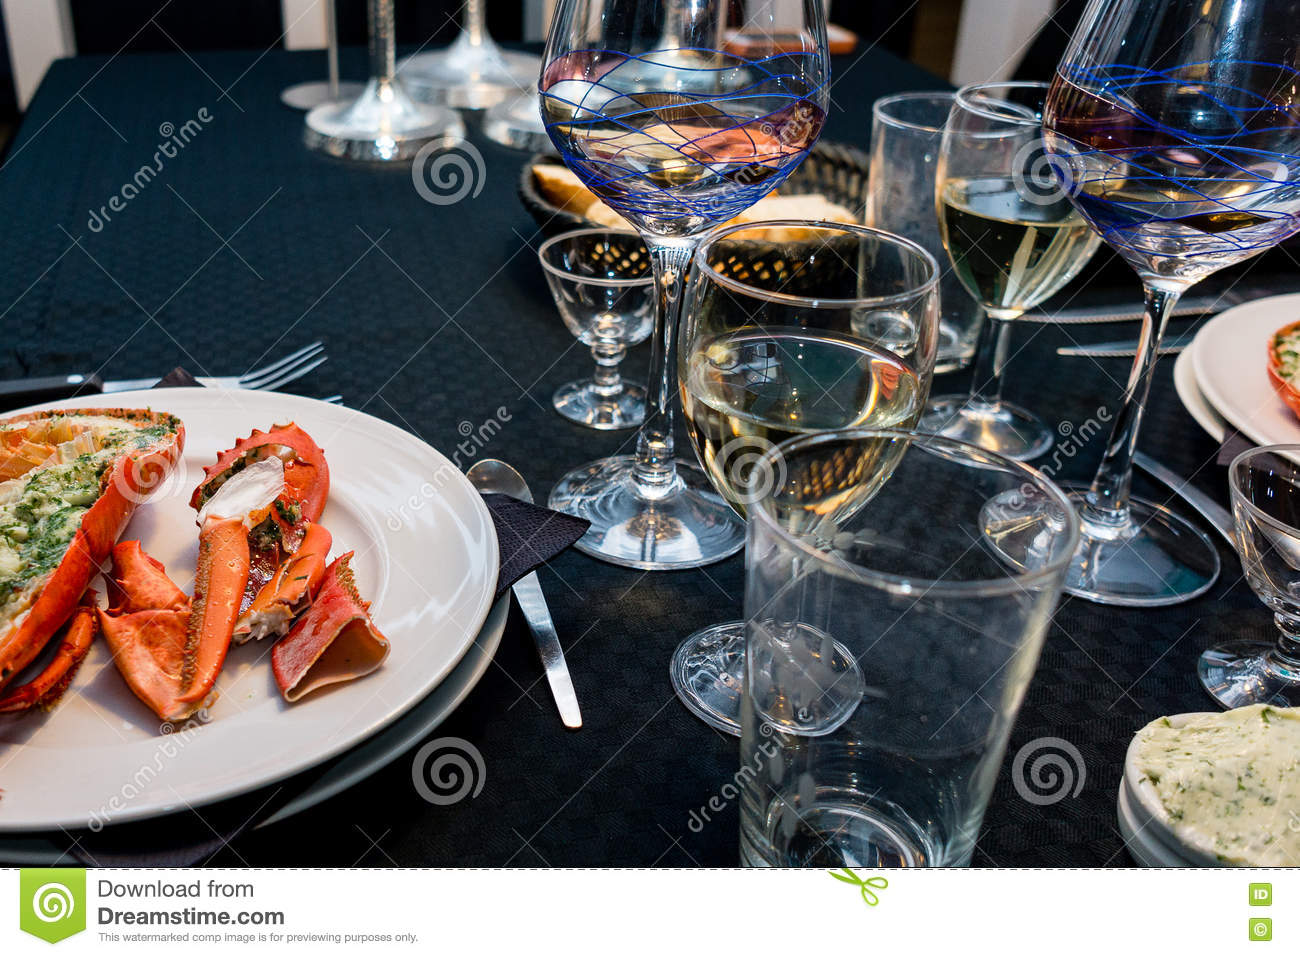 Lobster Dinner For Two On New Years Eve Stock Image Image Of Years